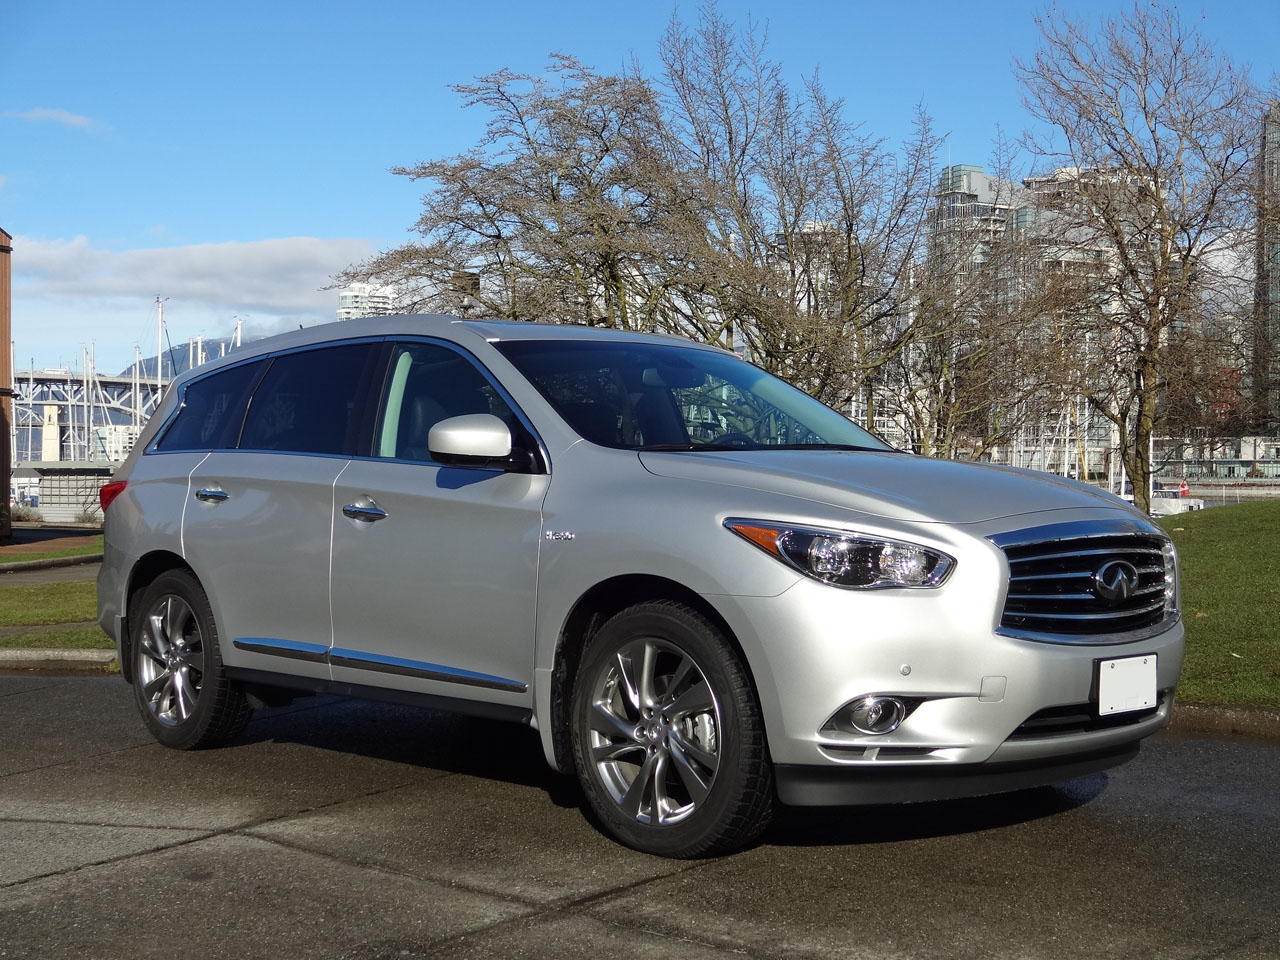 2014 infiniti qx60 hybrid road test review carcostcanada. Black Bedroom Furniture Sets. Home Design Ideas